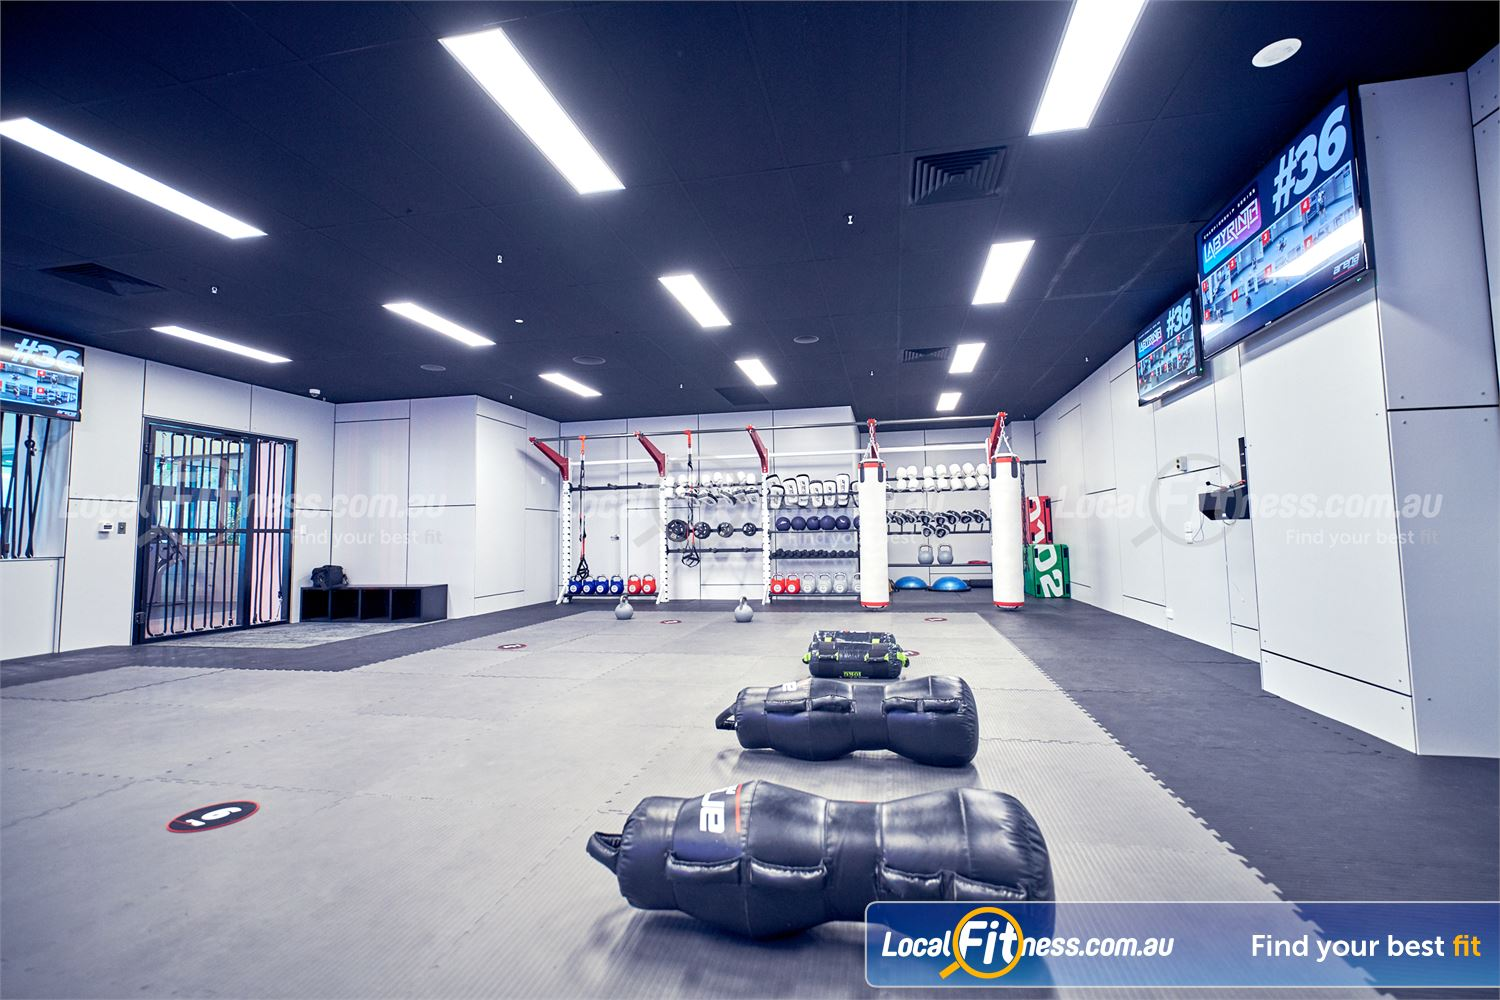 Goodlife Health Clubs Near Varsity Lakes Watch the next exercise on the large screen at Robina Arena MMA.